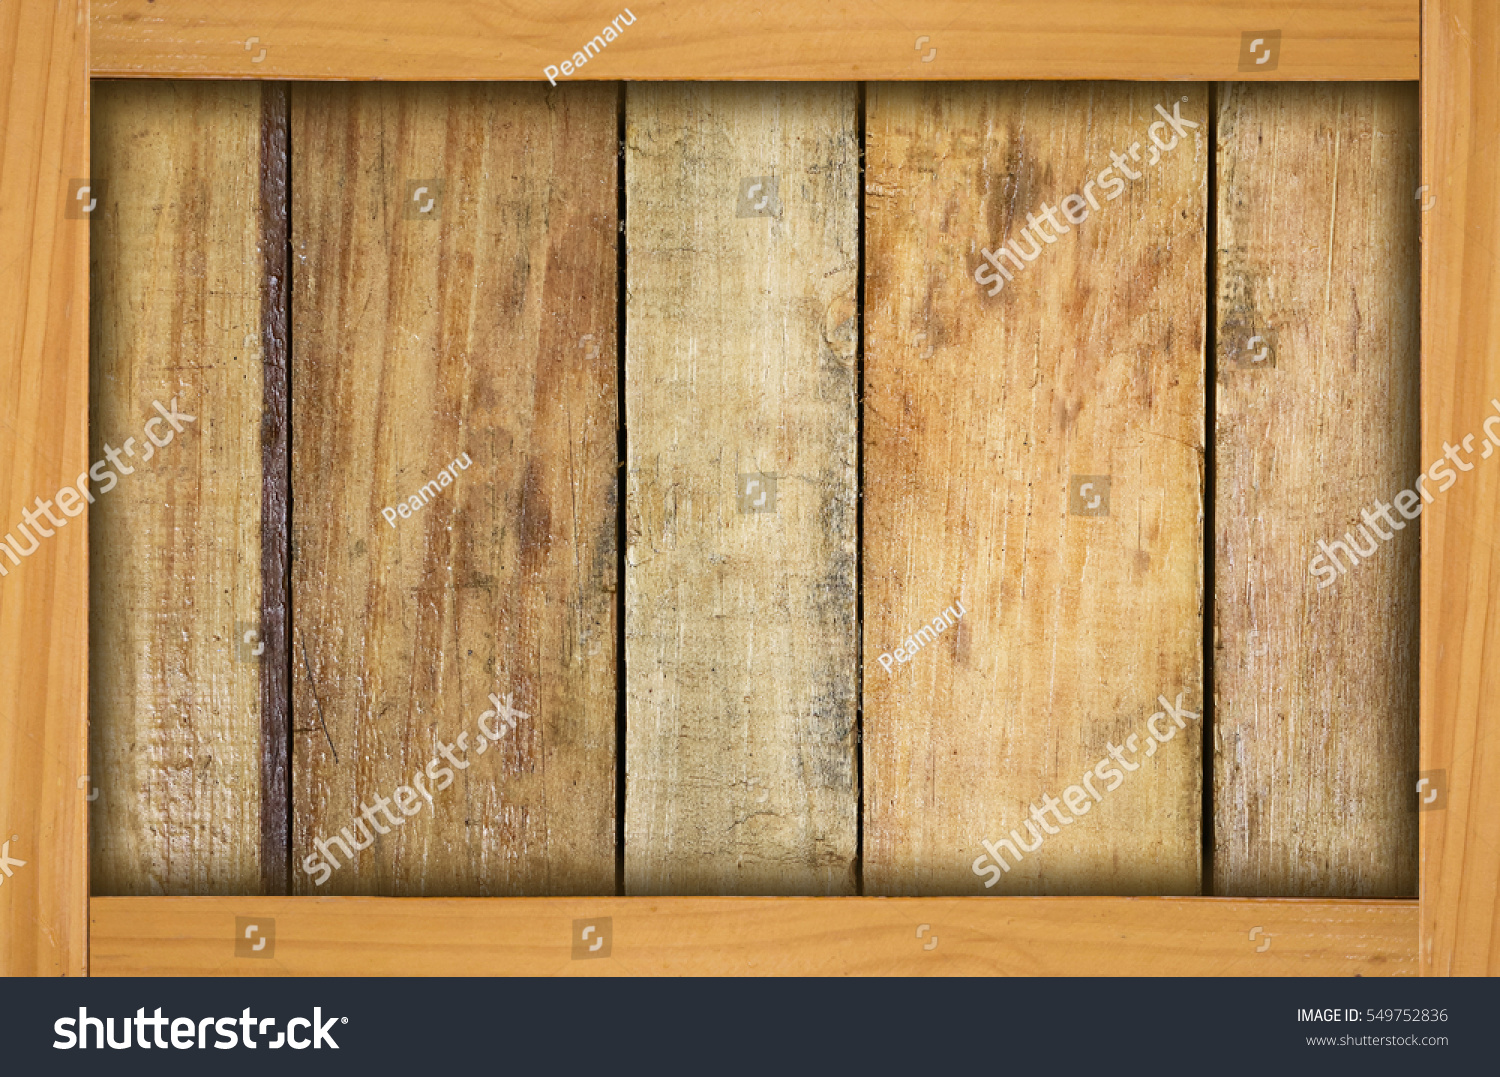 Nice Wall Art Made Of Wood Inspiration - The Wall Art Decorations ...